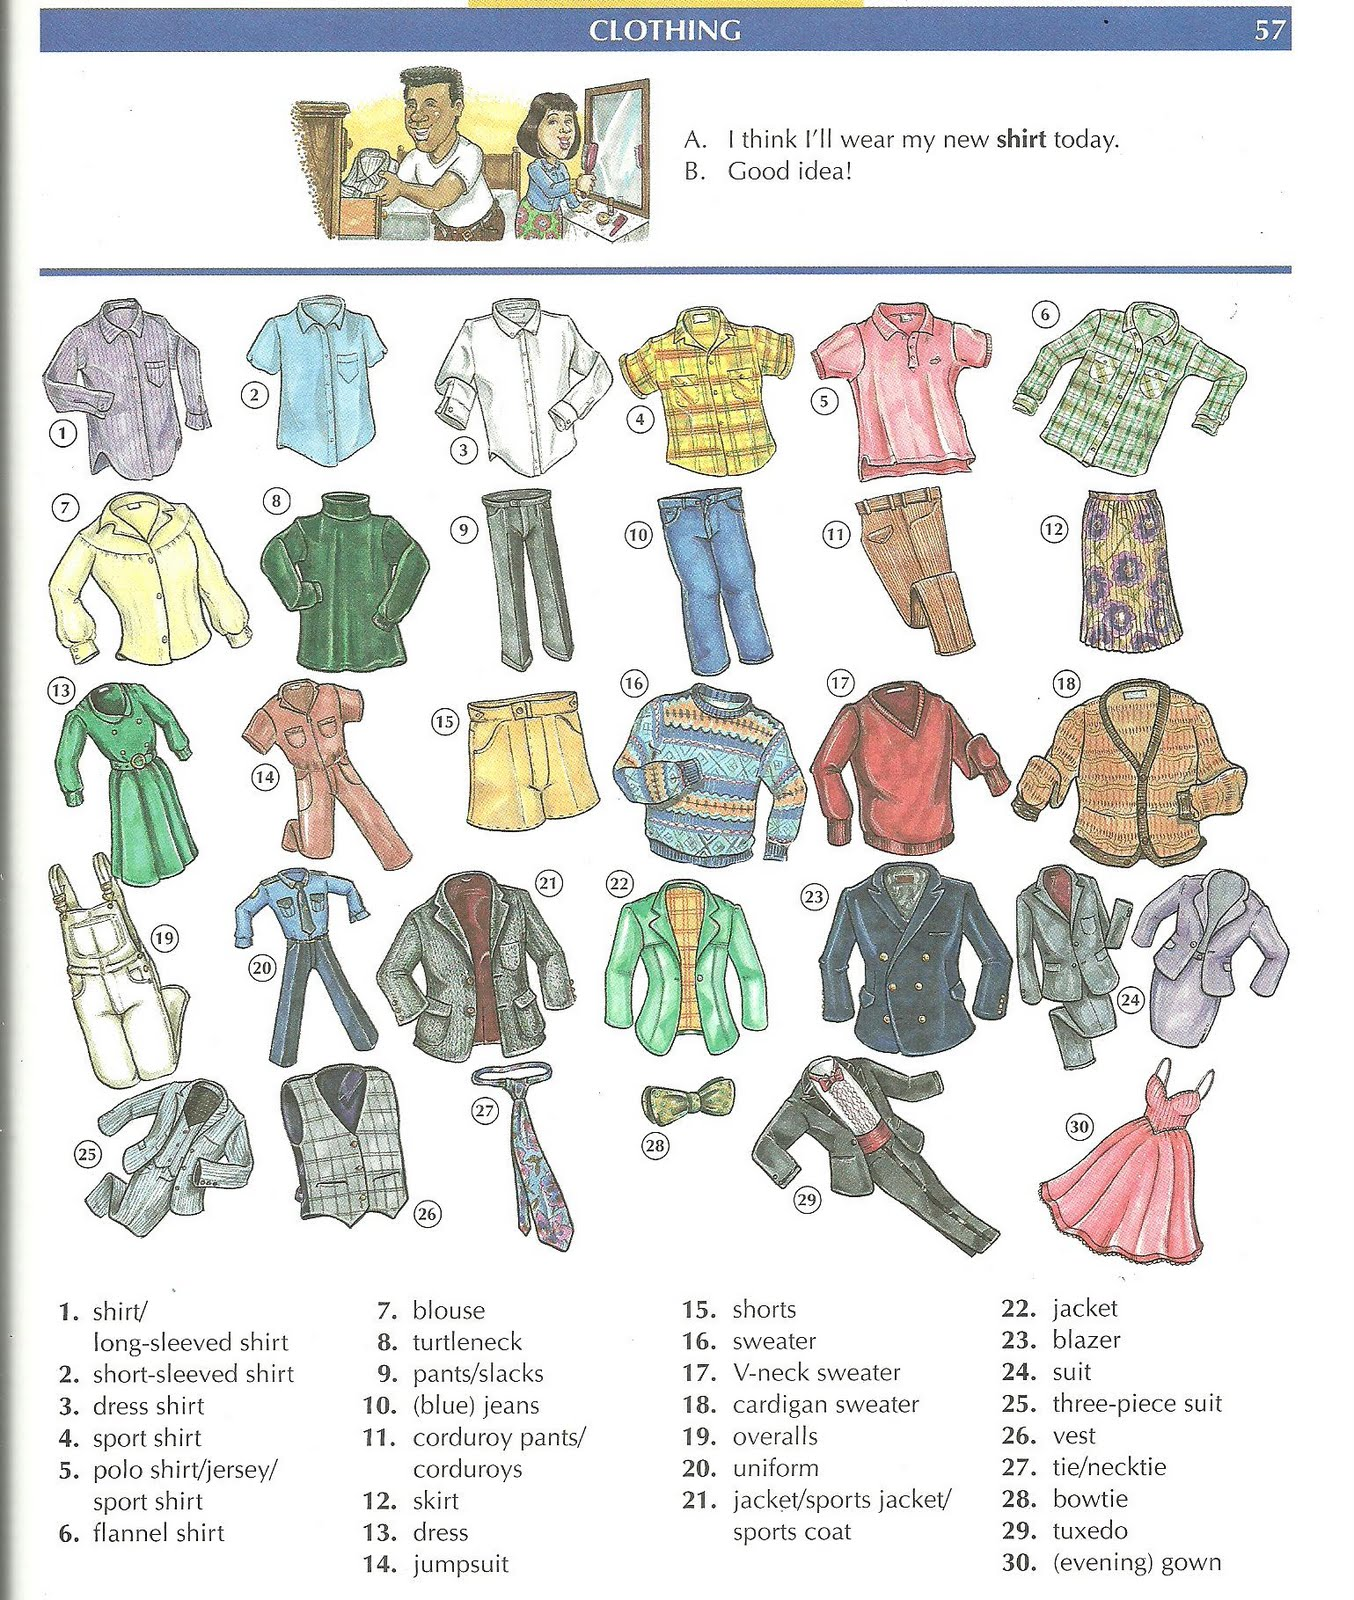 Mauxi Efs Clothes Vocabulary